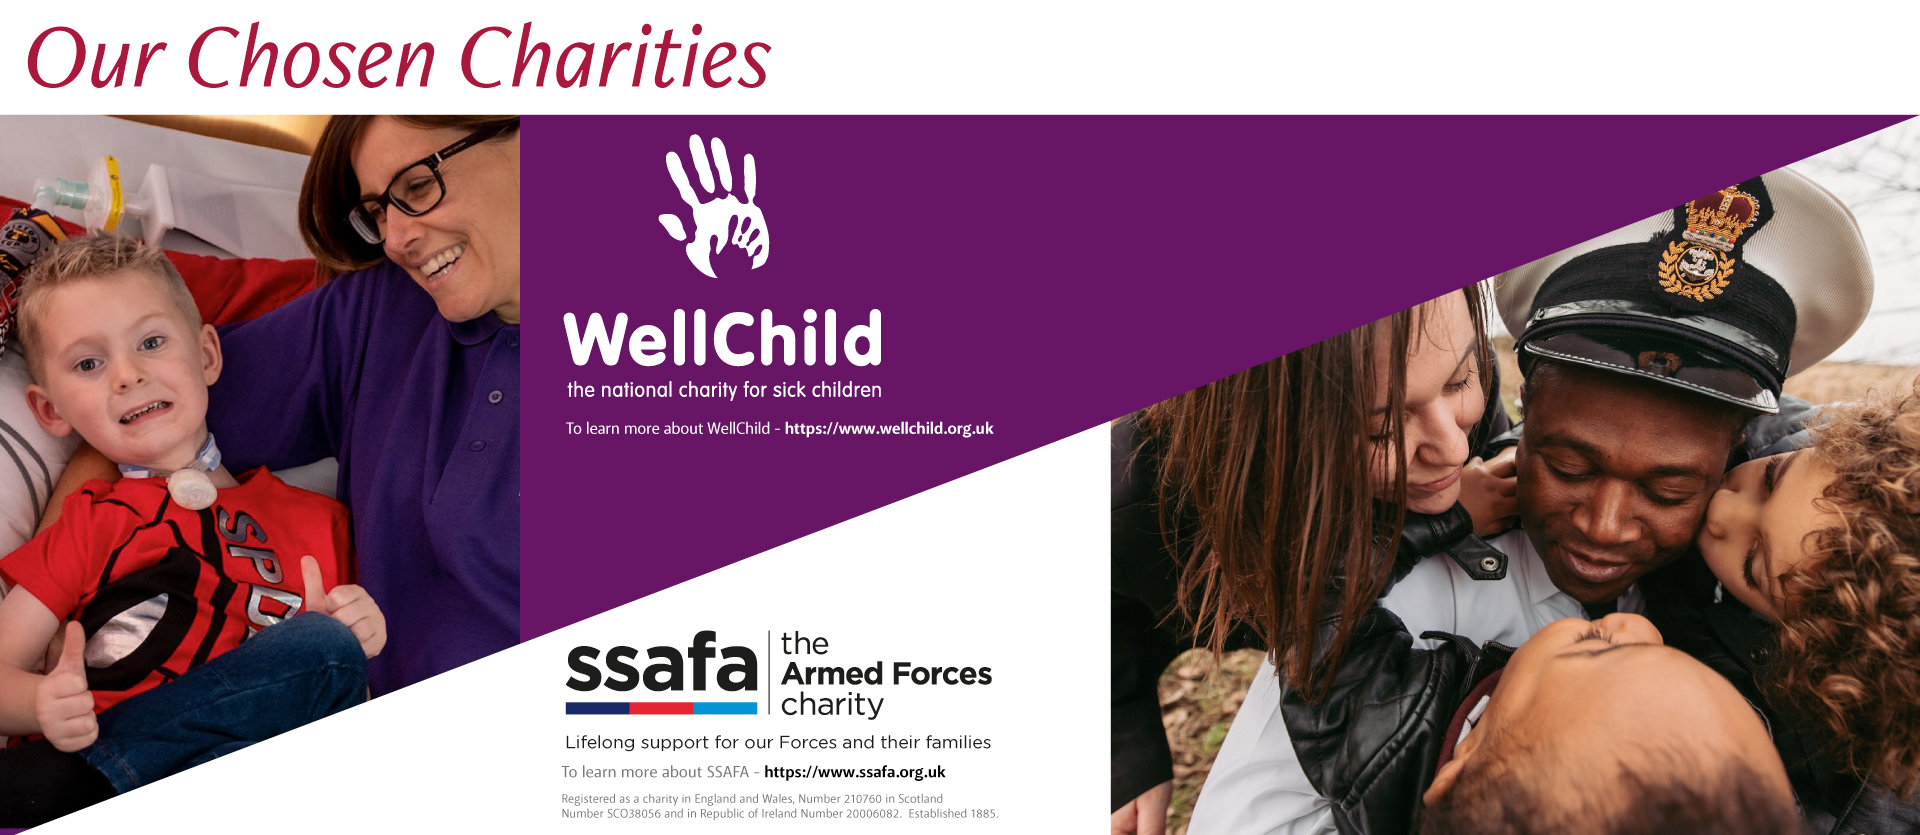 Our chosen charities - WellChild and SSAFA